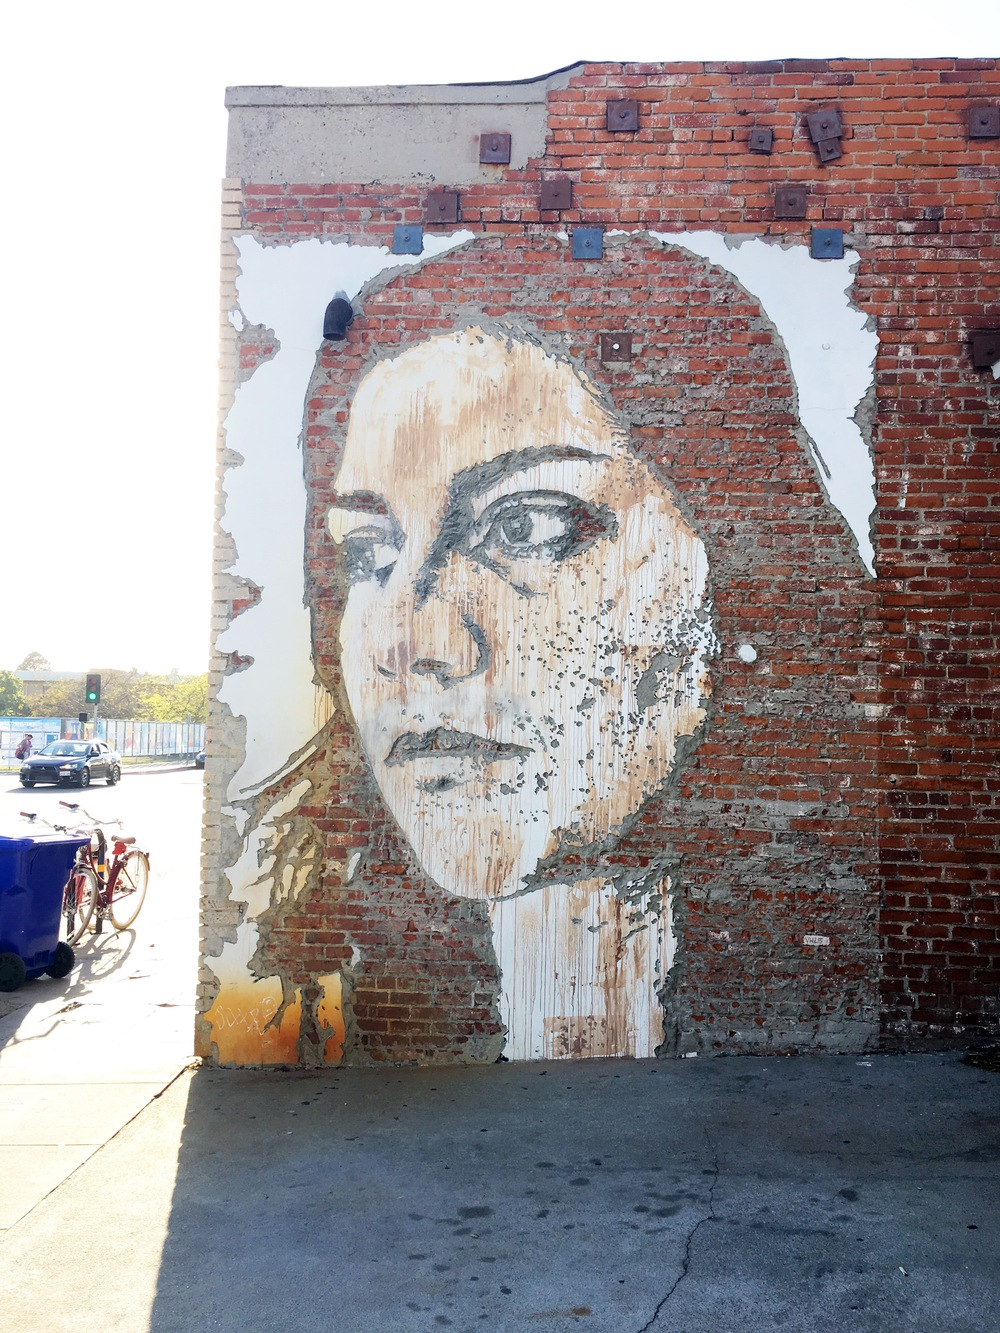 Amazing street art by Vhils. This is created with explosives.